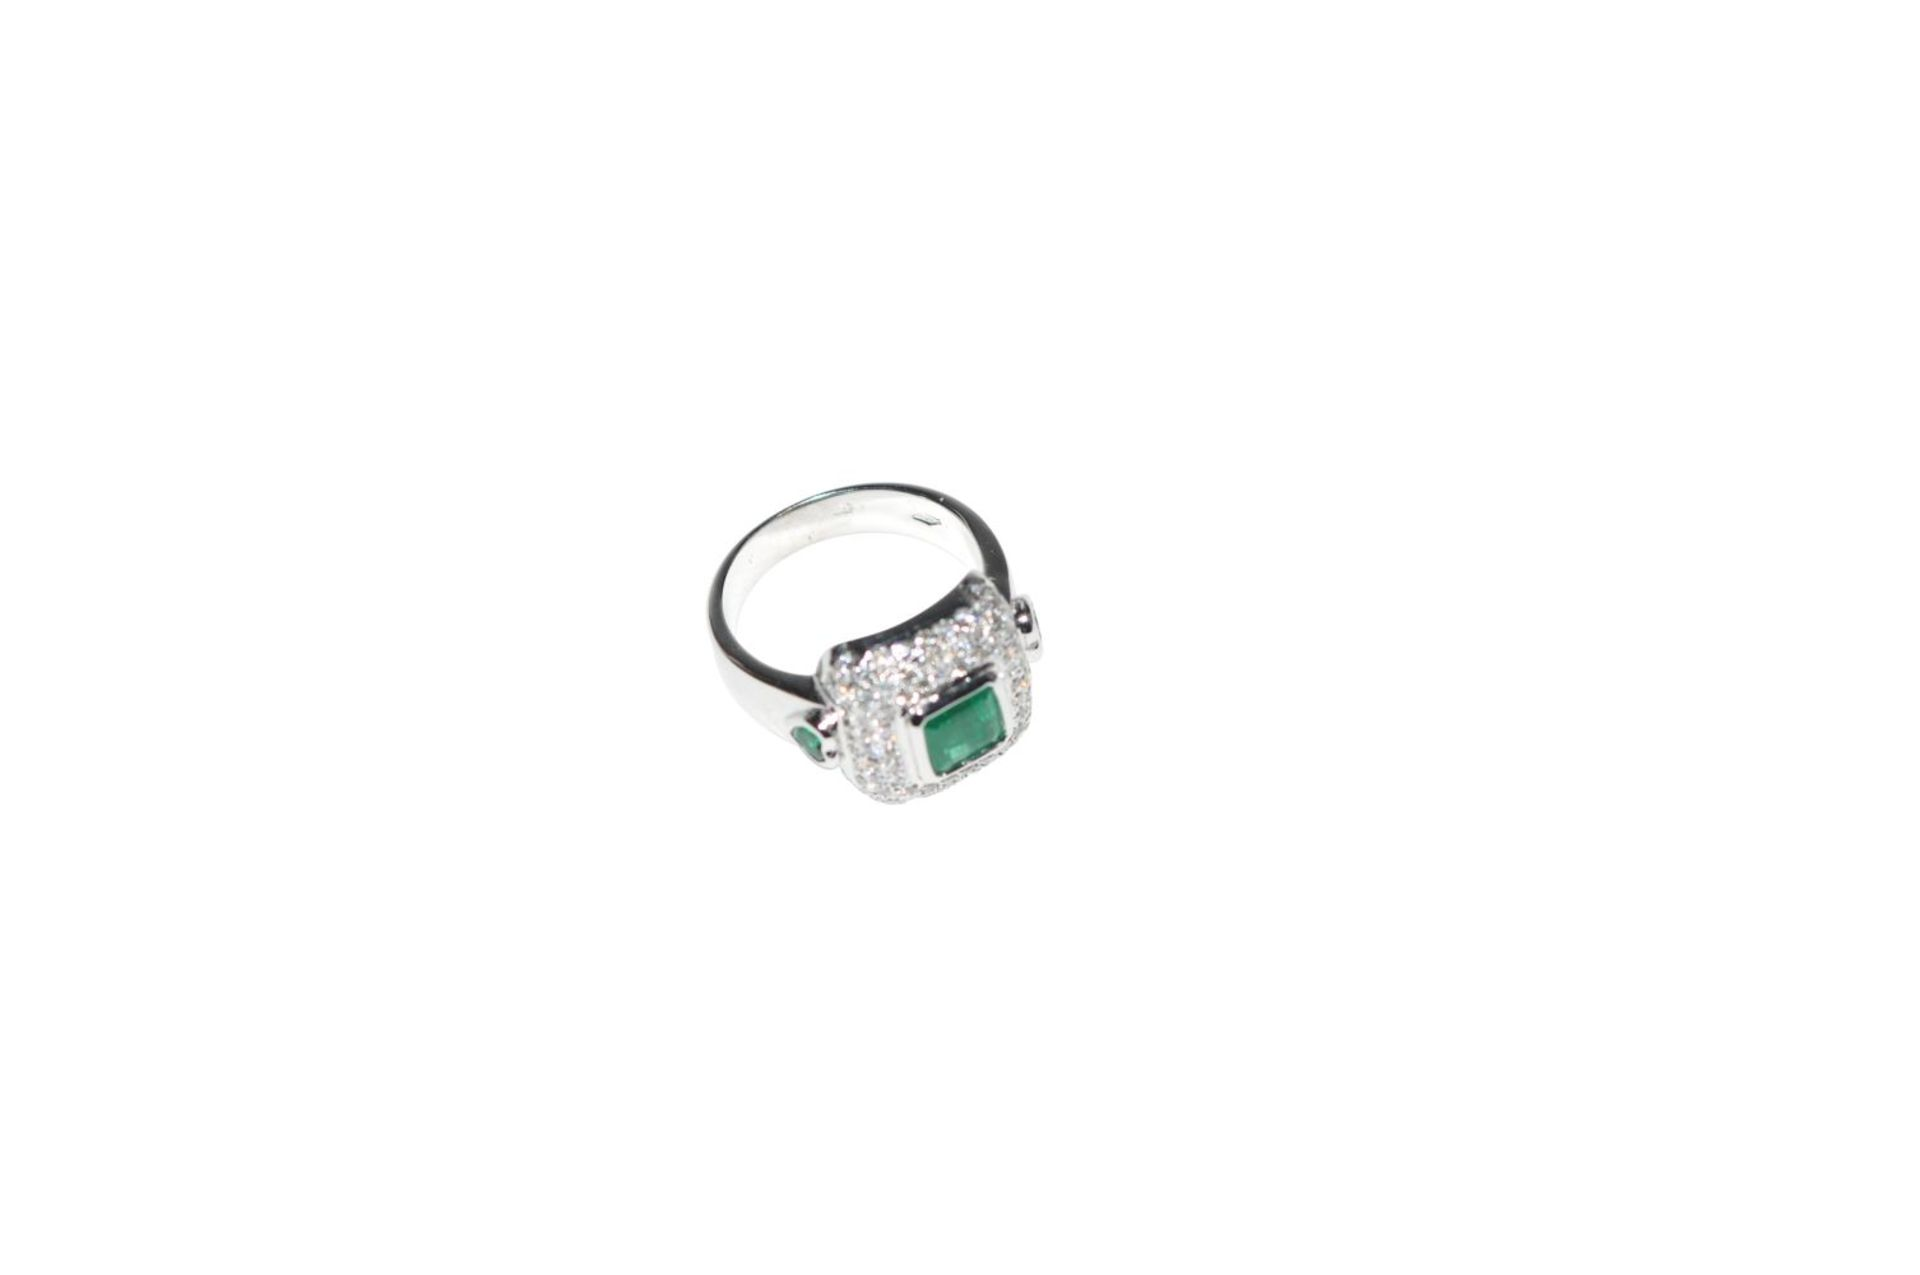 Los 103 - Brilliant ring with emerald18kt white gold ring with brilliants, total carat weight approx. 0.87ct